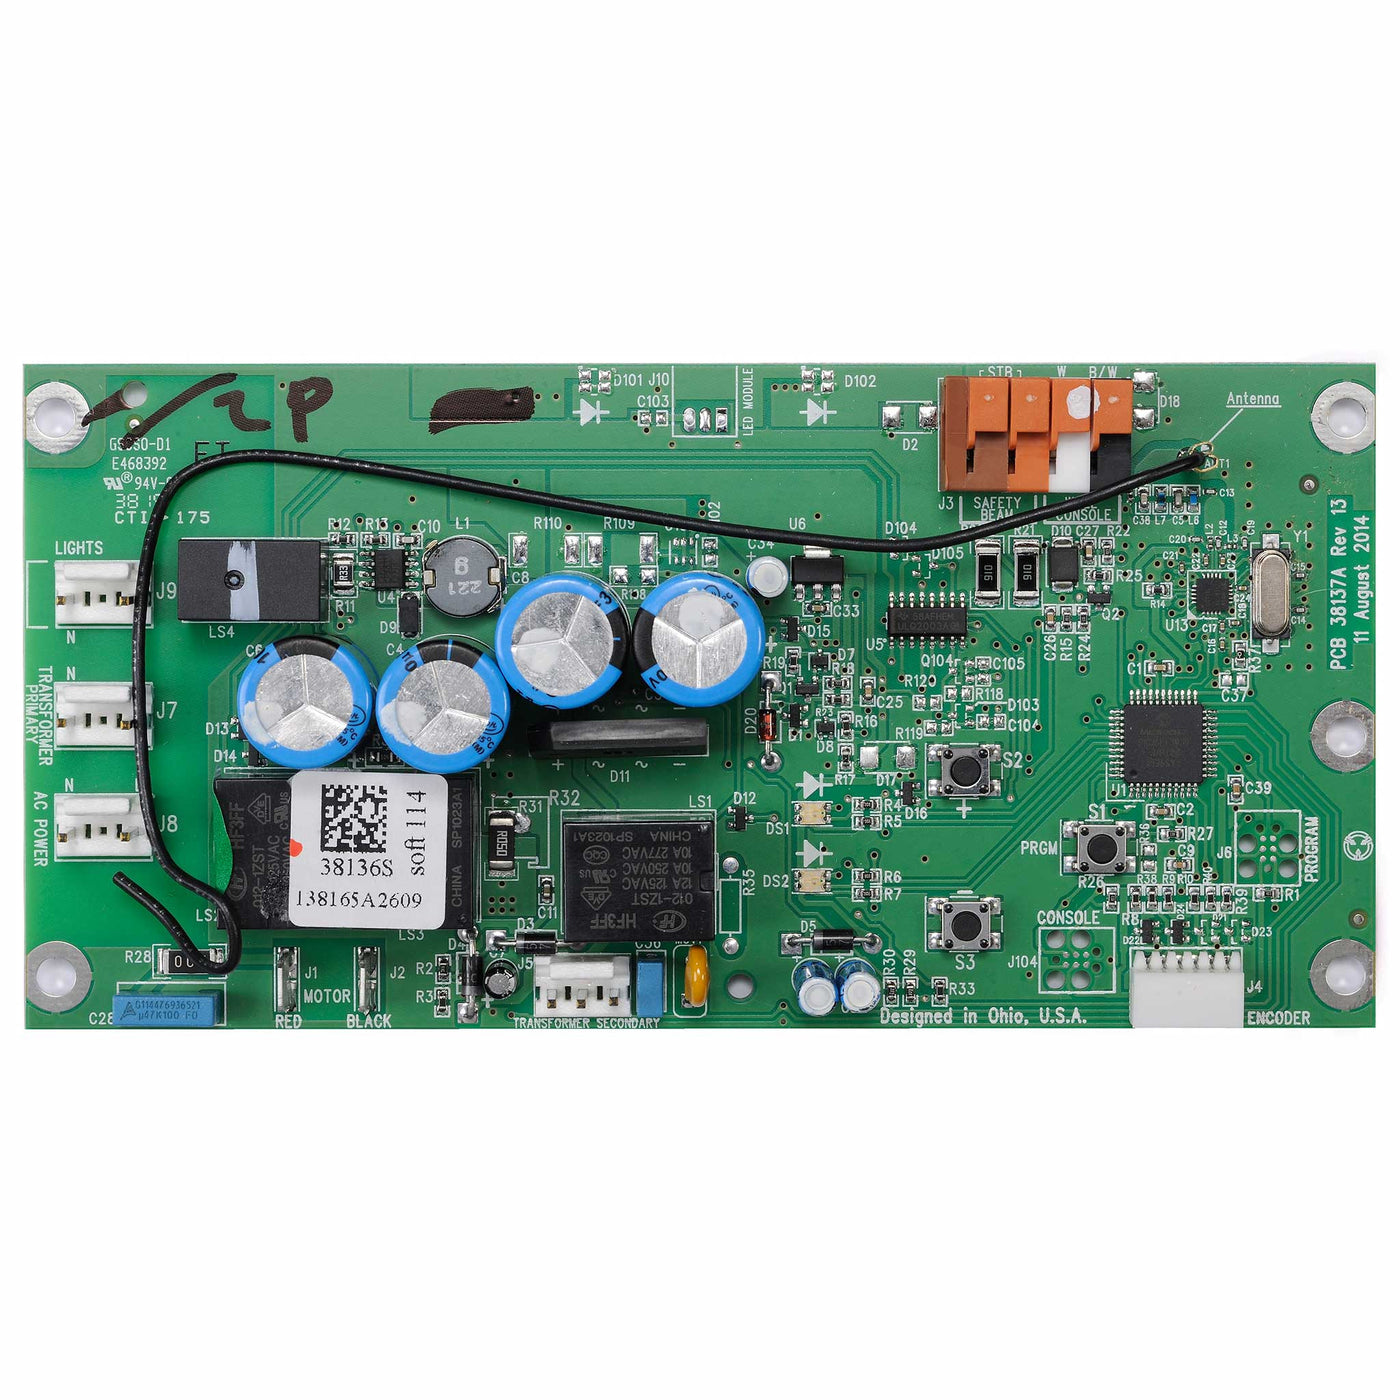 Genie Circuit Board For Model 4062 Web About Wiring Diagram Powermax 1200 Assembly 39340r S The Company Rh Store Geniecompany Com Excelerator Ii Garage Door Opener Parts